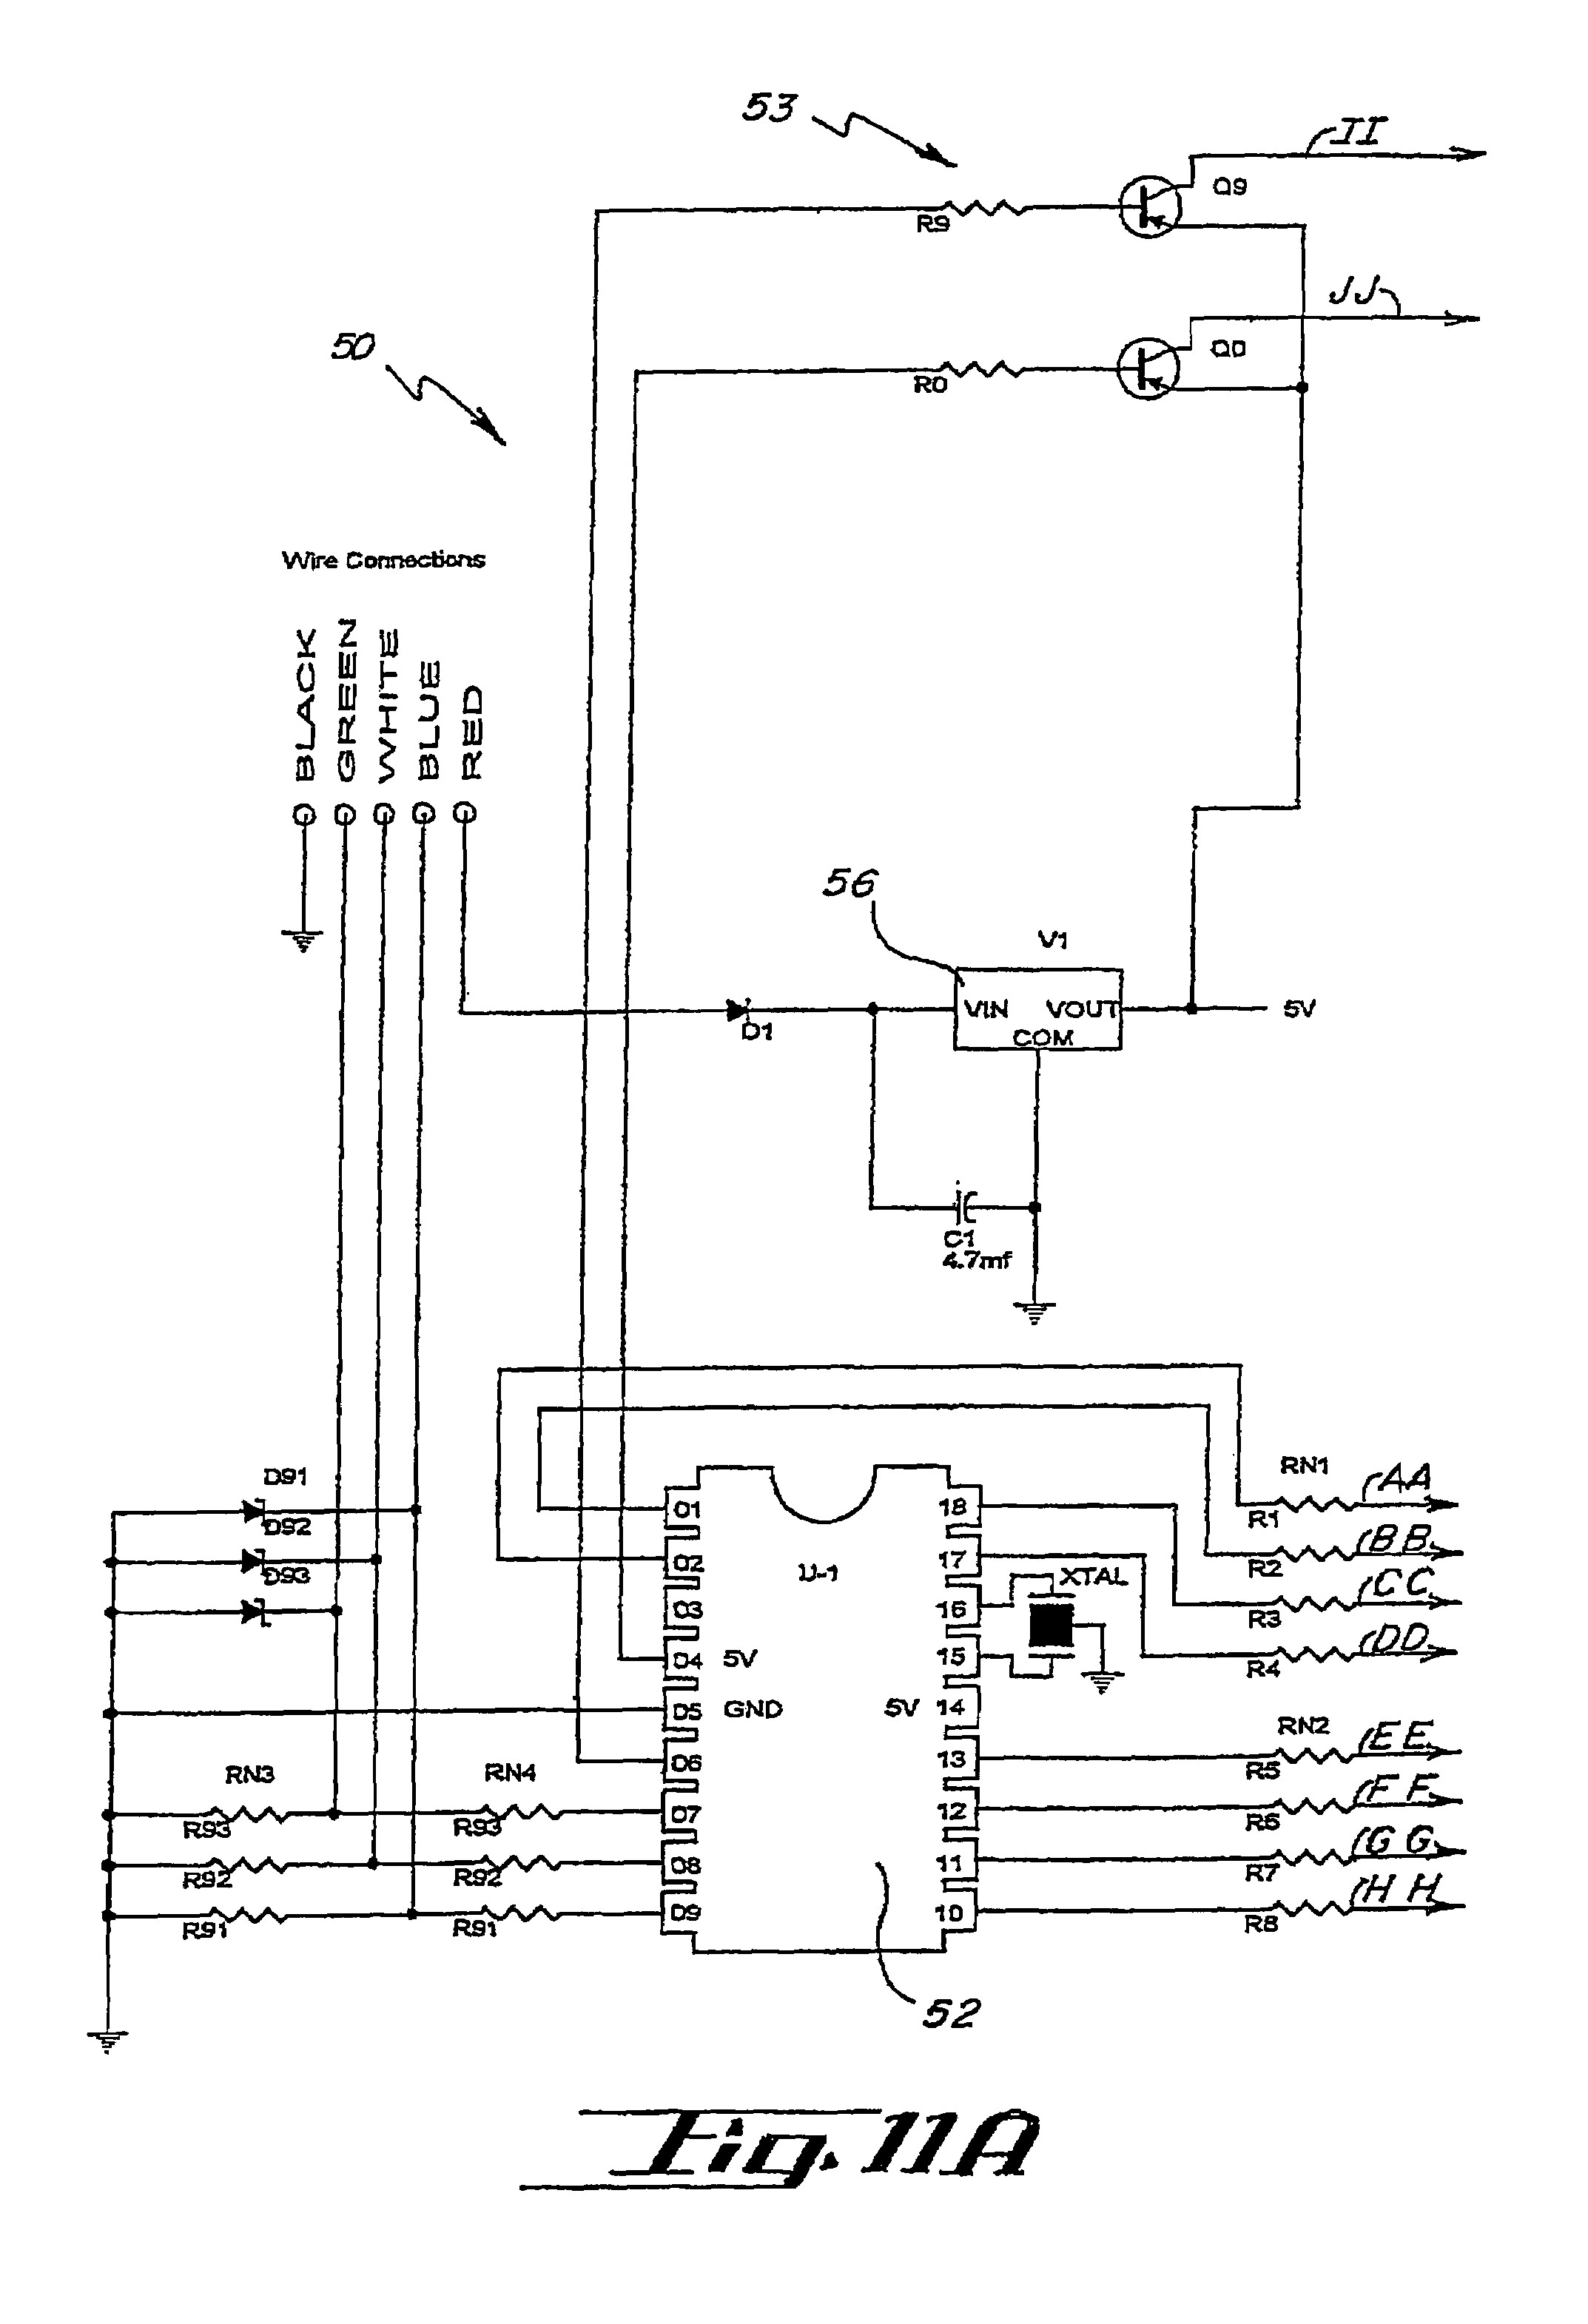 Wiring Diagram Mx7000